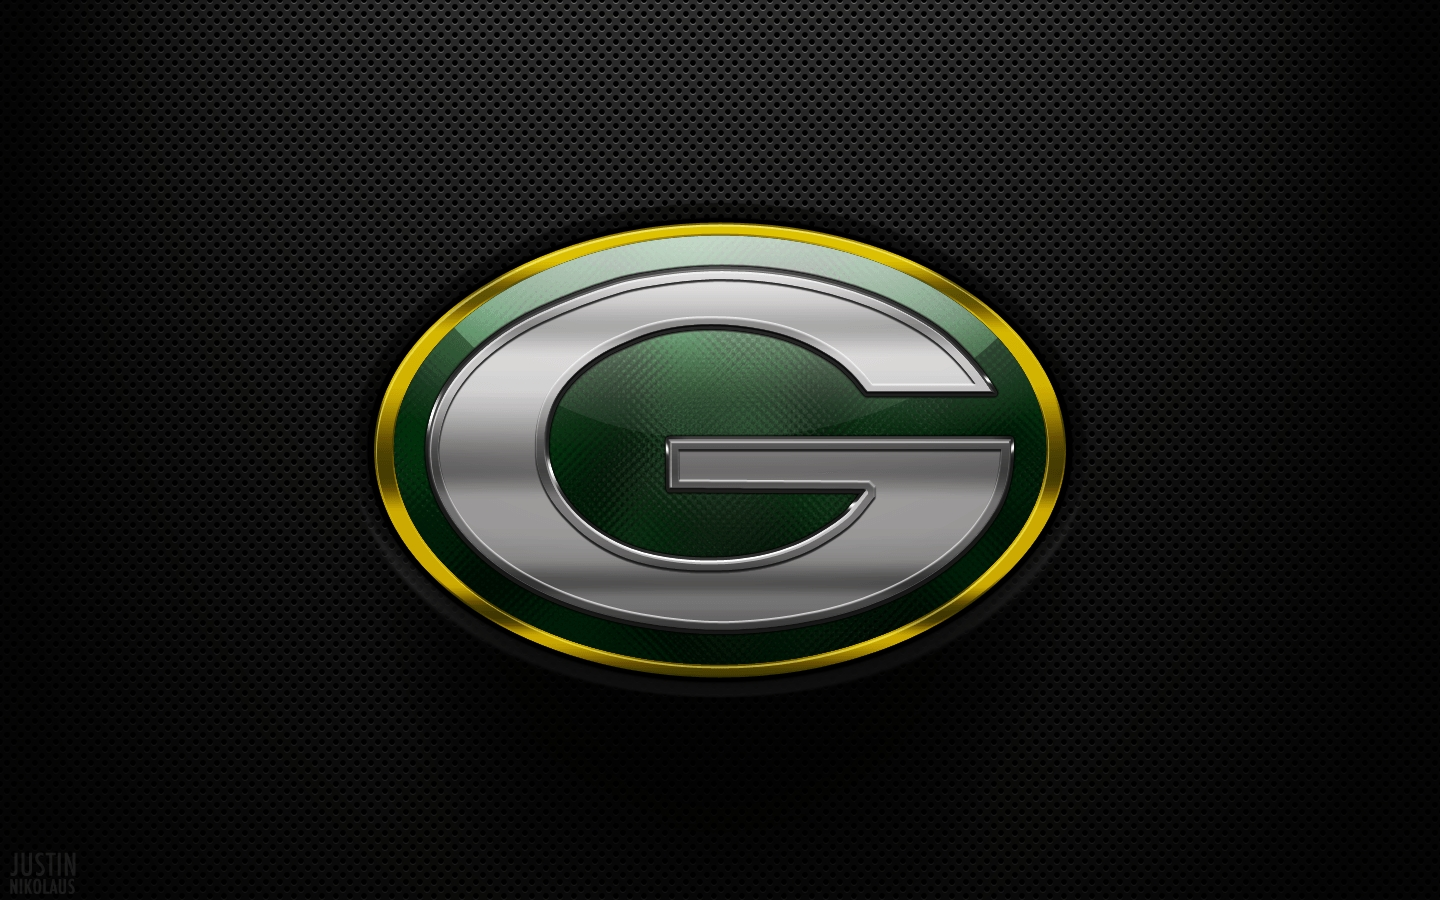 green bay packers desktop background wallpapers packers logo | hd